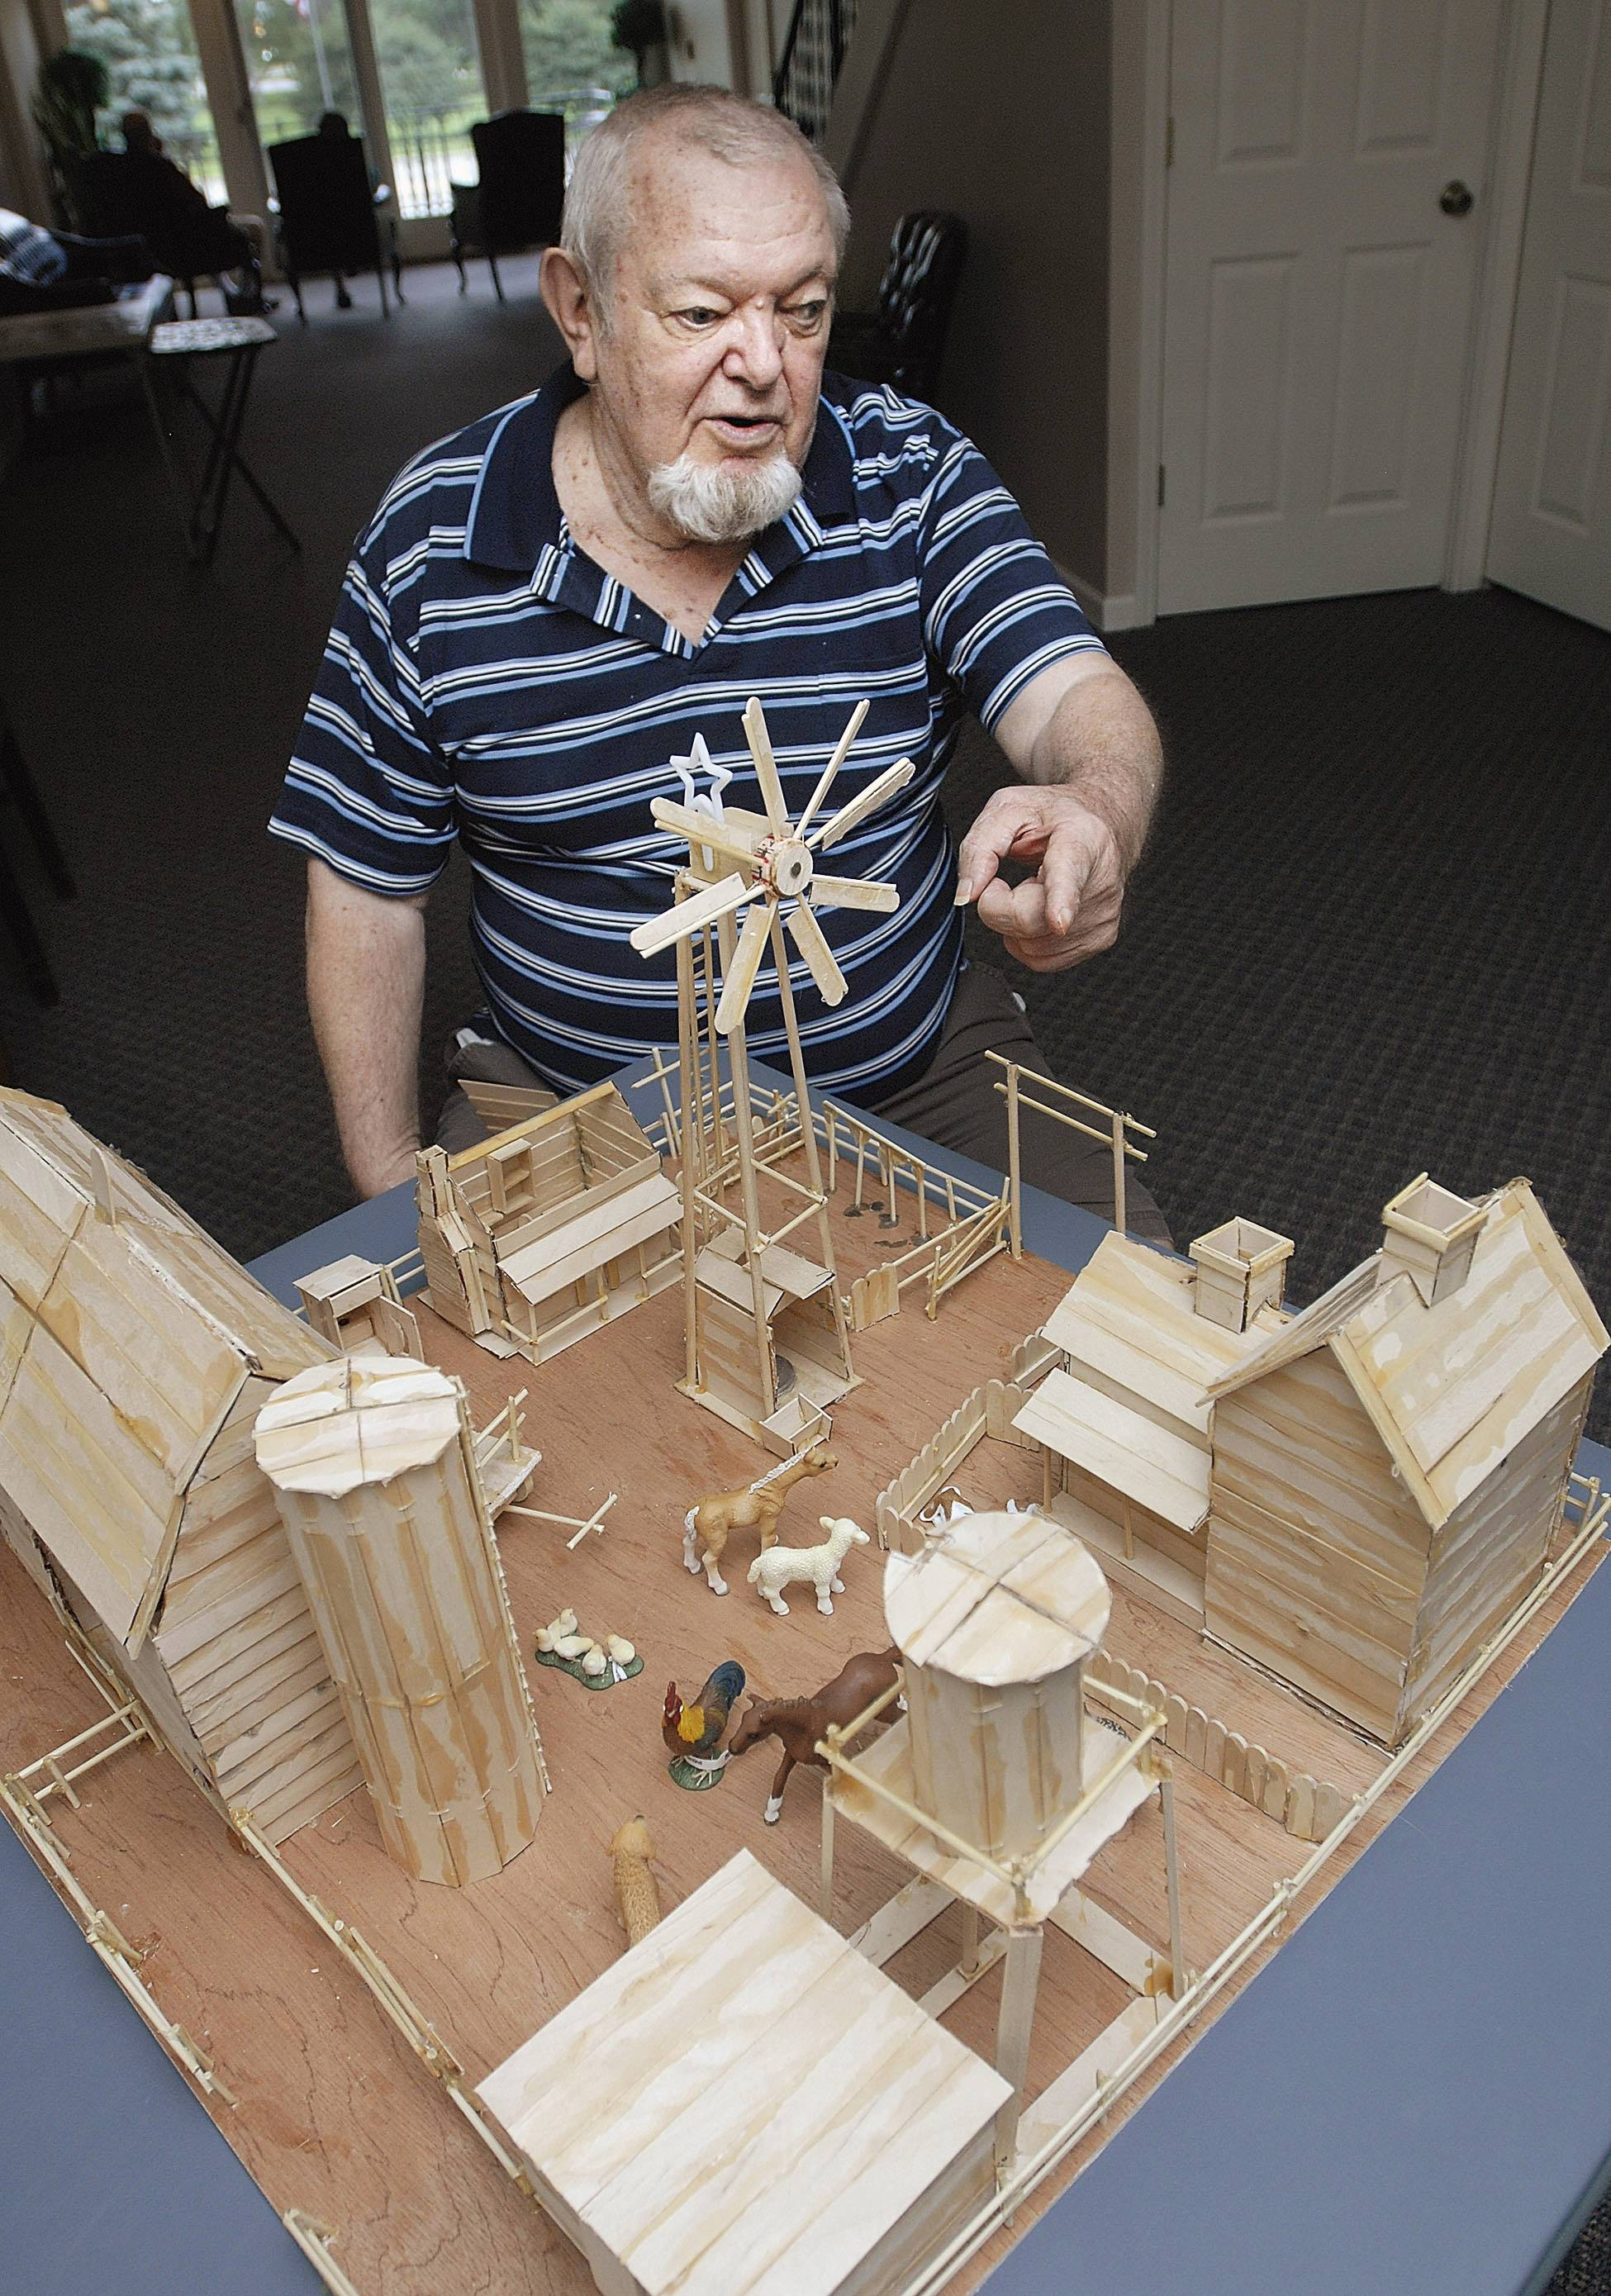 Hock sits with a 4-foot square farmstead he made completely out of tongue depressors, popsicle sticks and other various wood products at The Myerling, an assisted living group home.